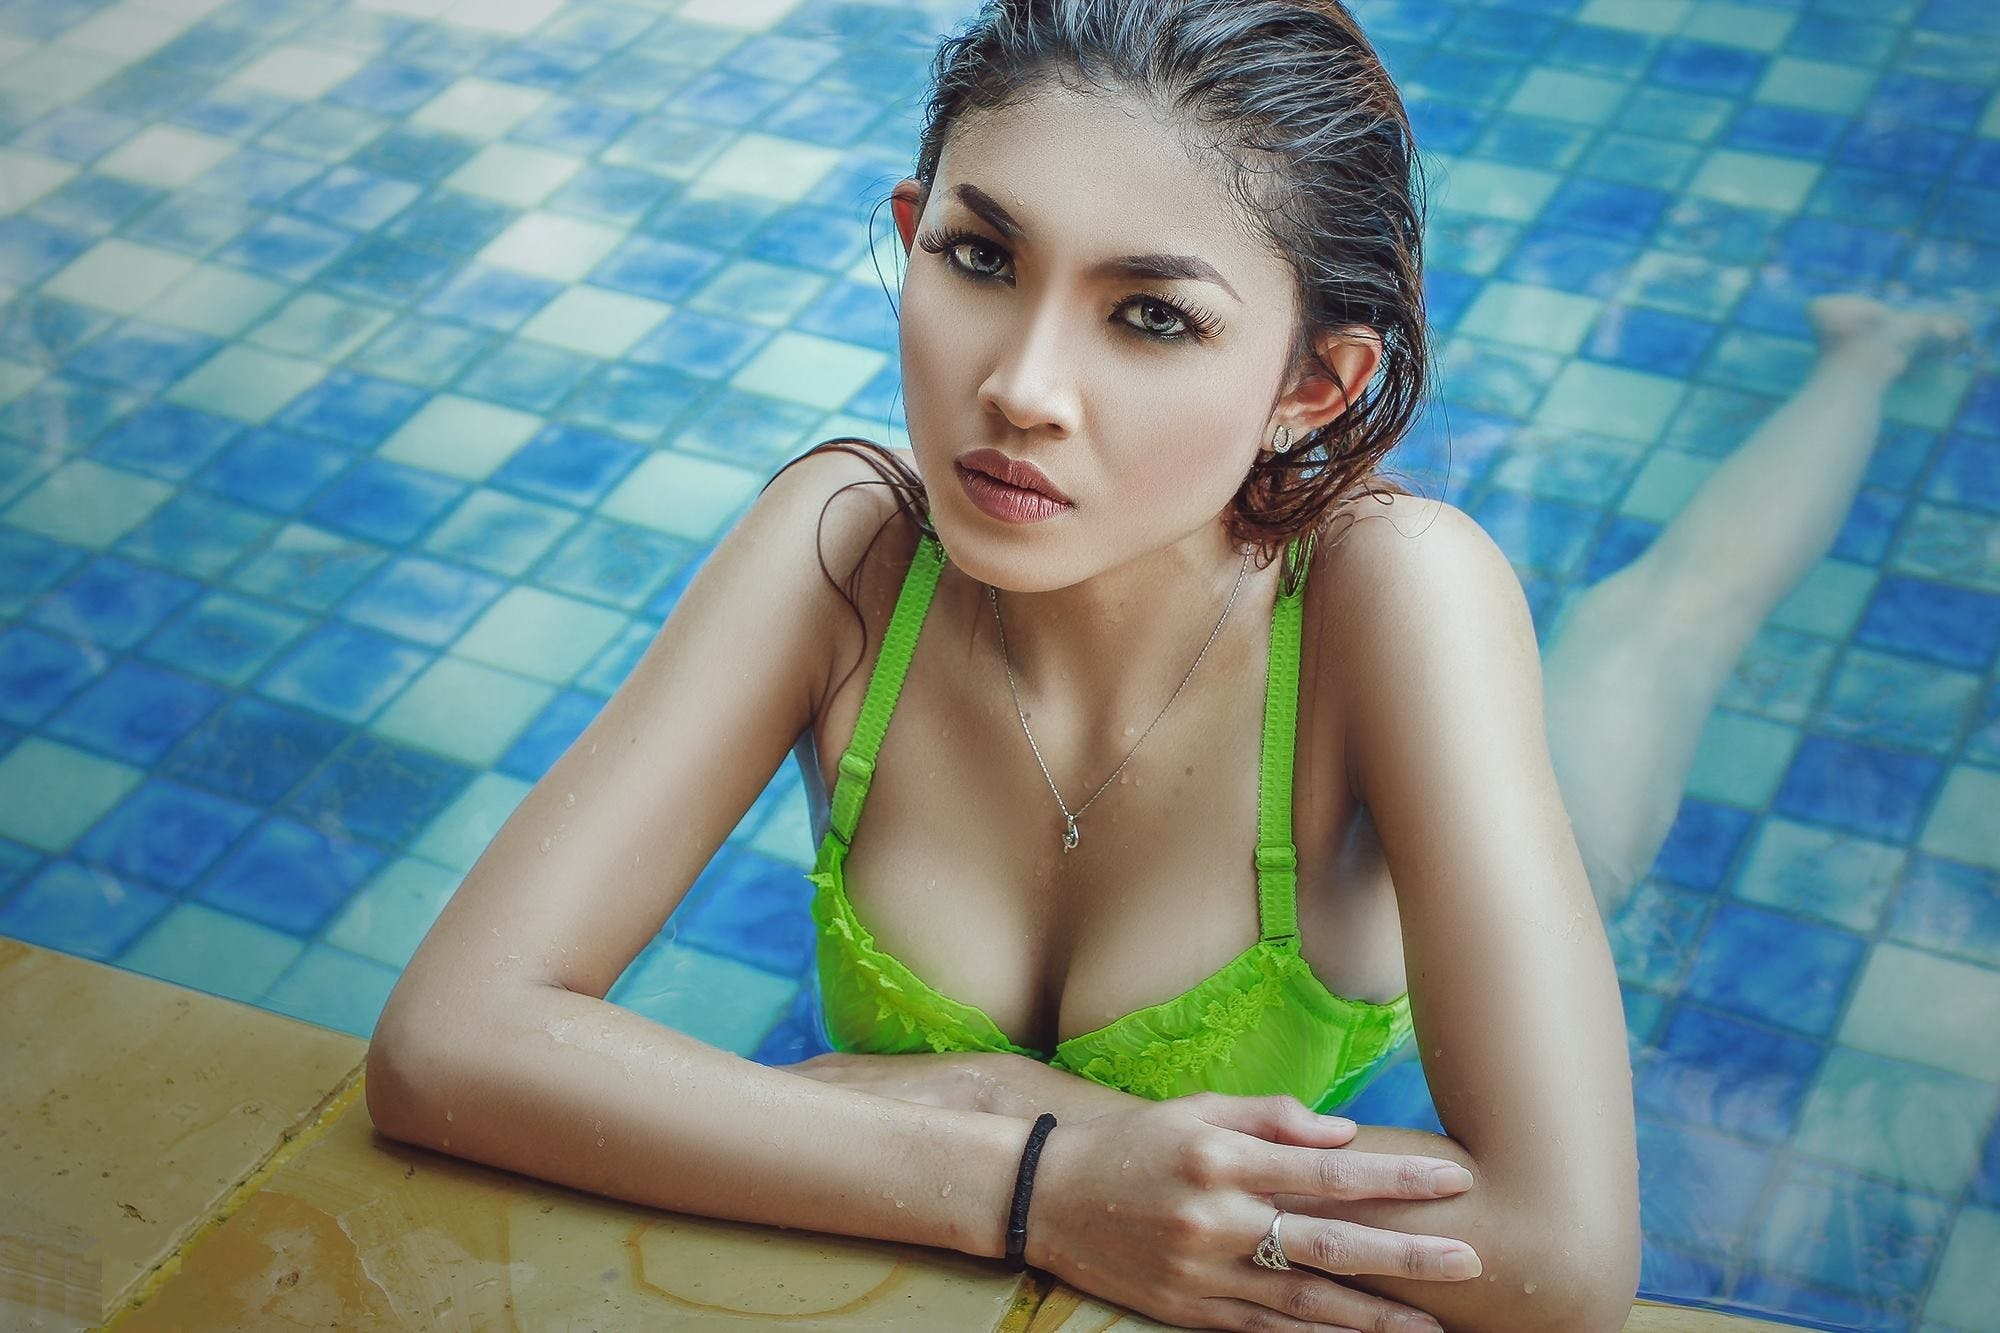 Woman Wearing Green Bra in Pool